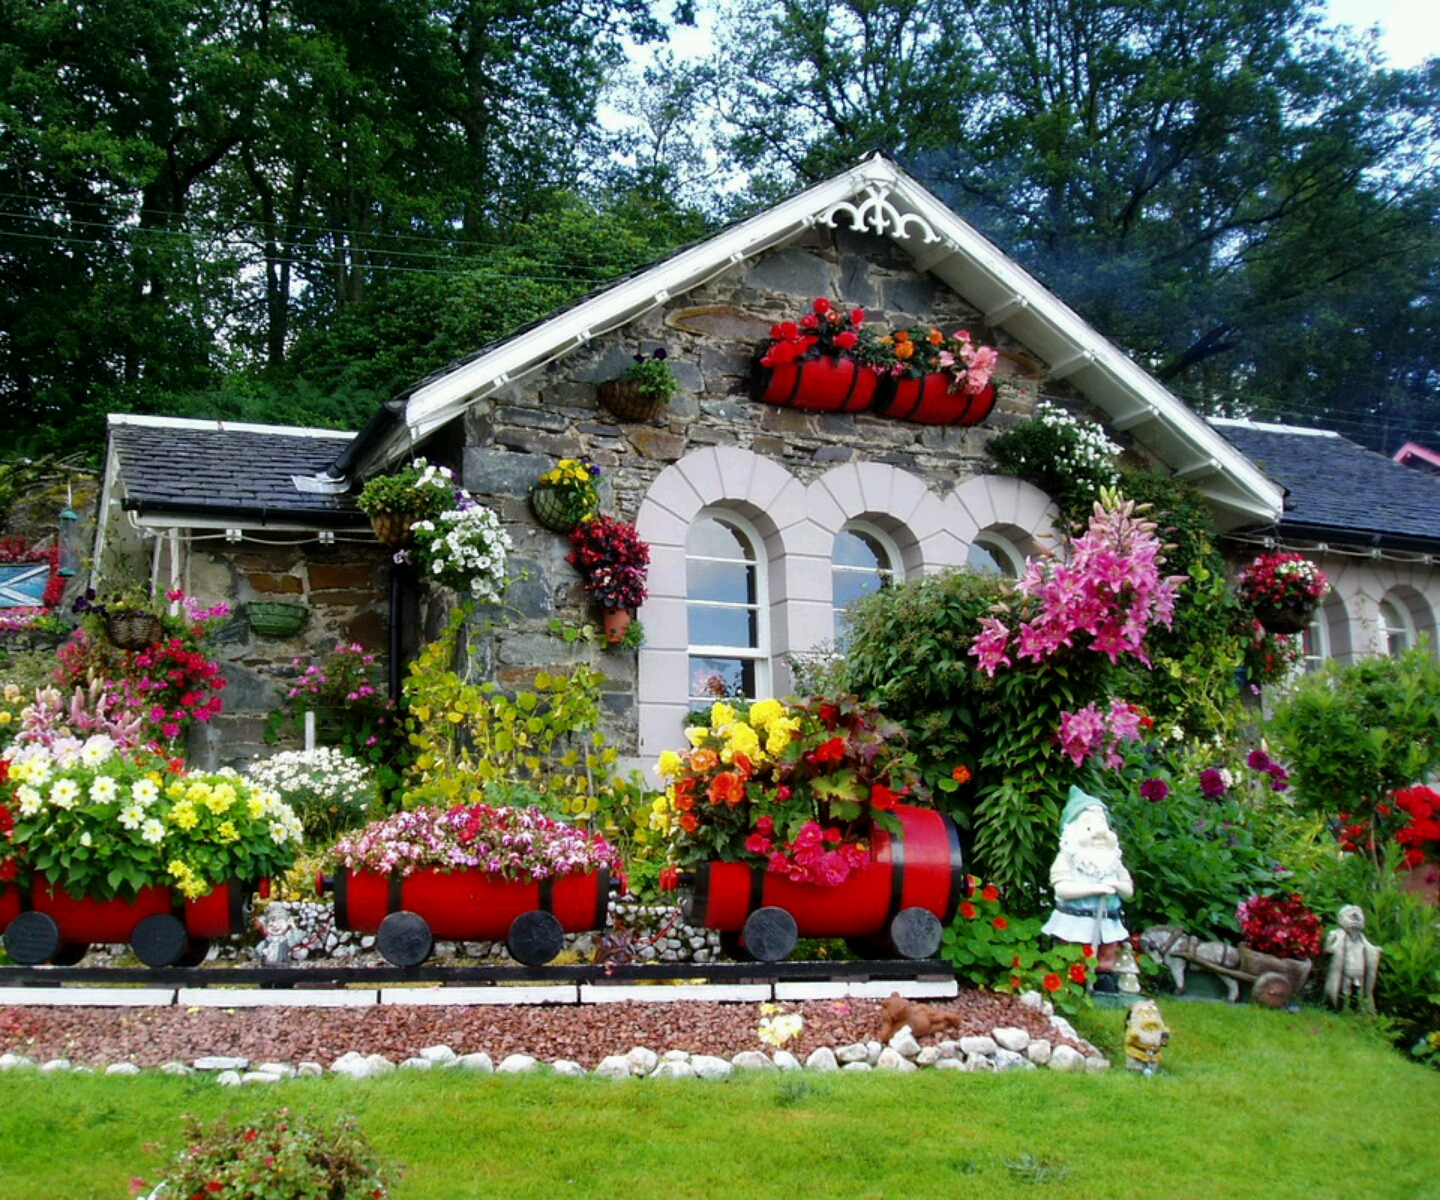 The House Beautiful Delectable With Homes with Beautiful Gardens Photo